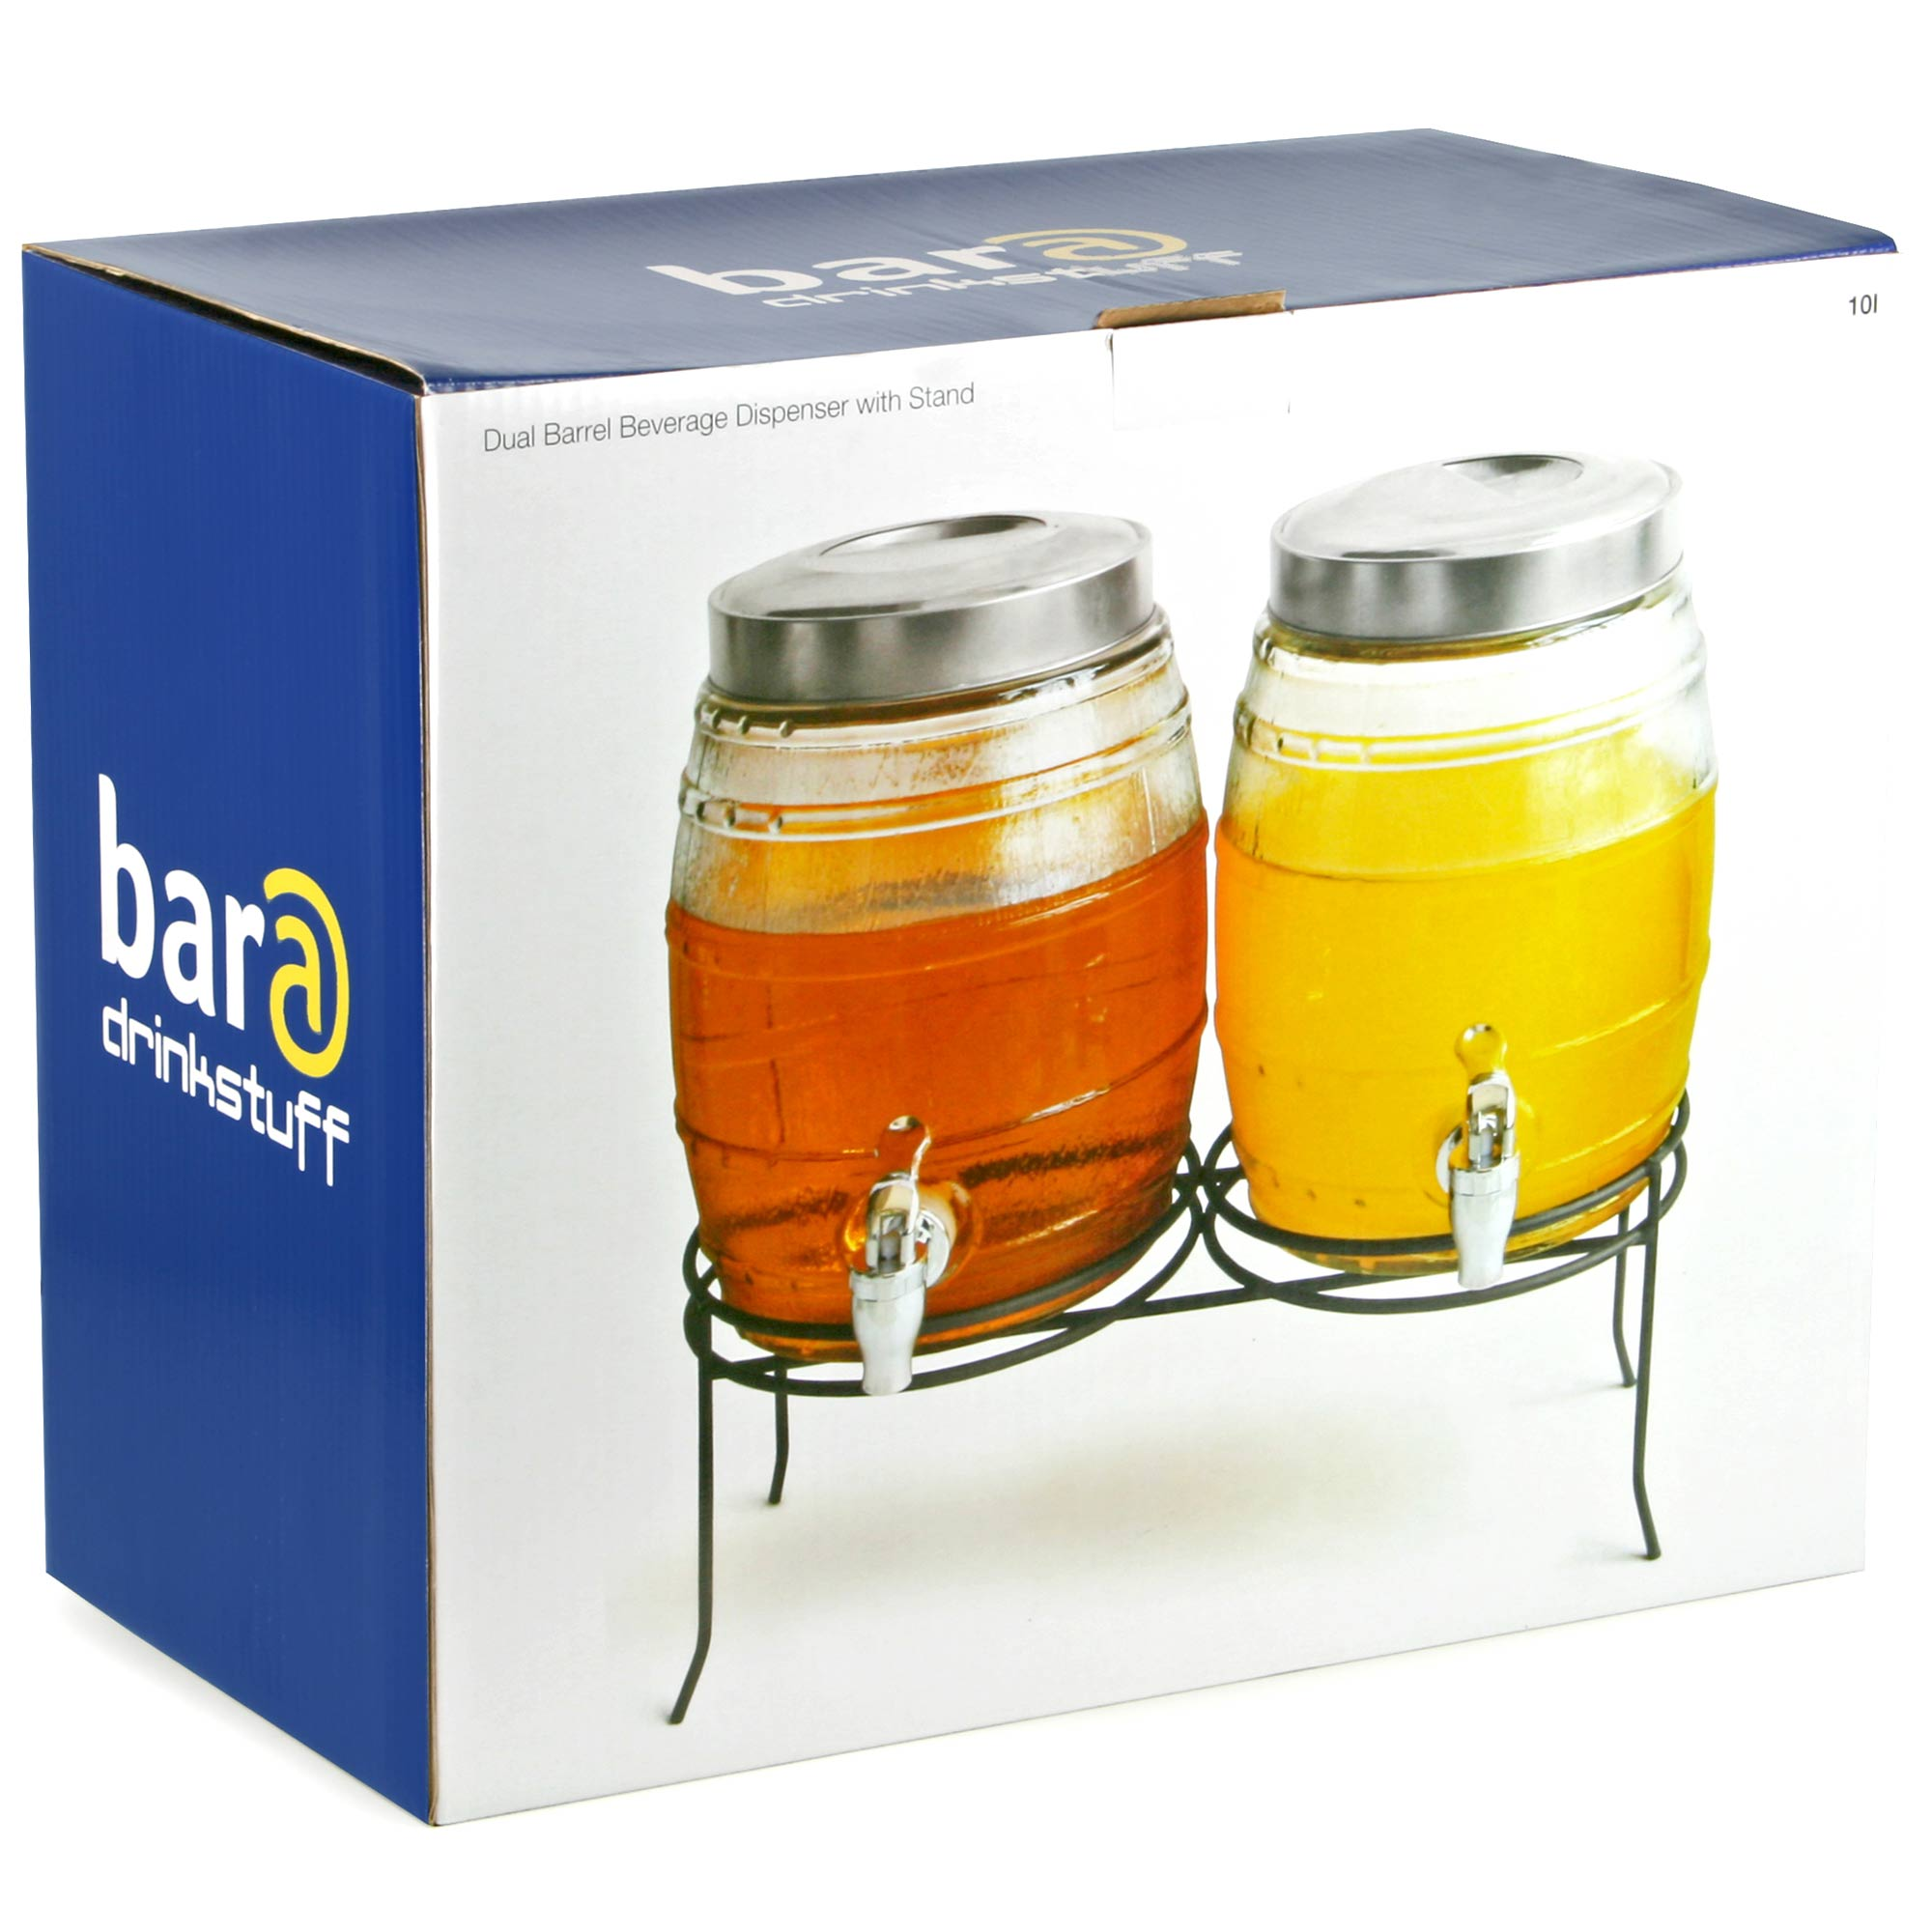 Dual Barrel Beverage Dispenser With Stand 10ltr Beverage